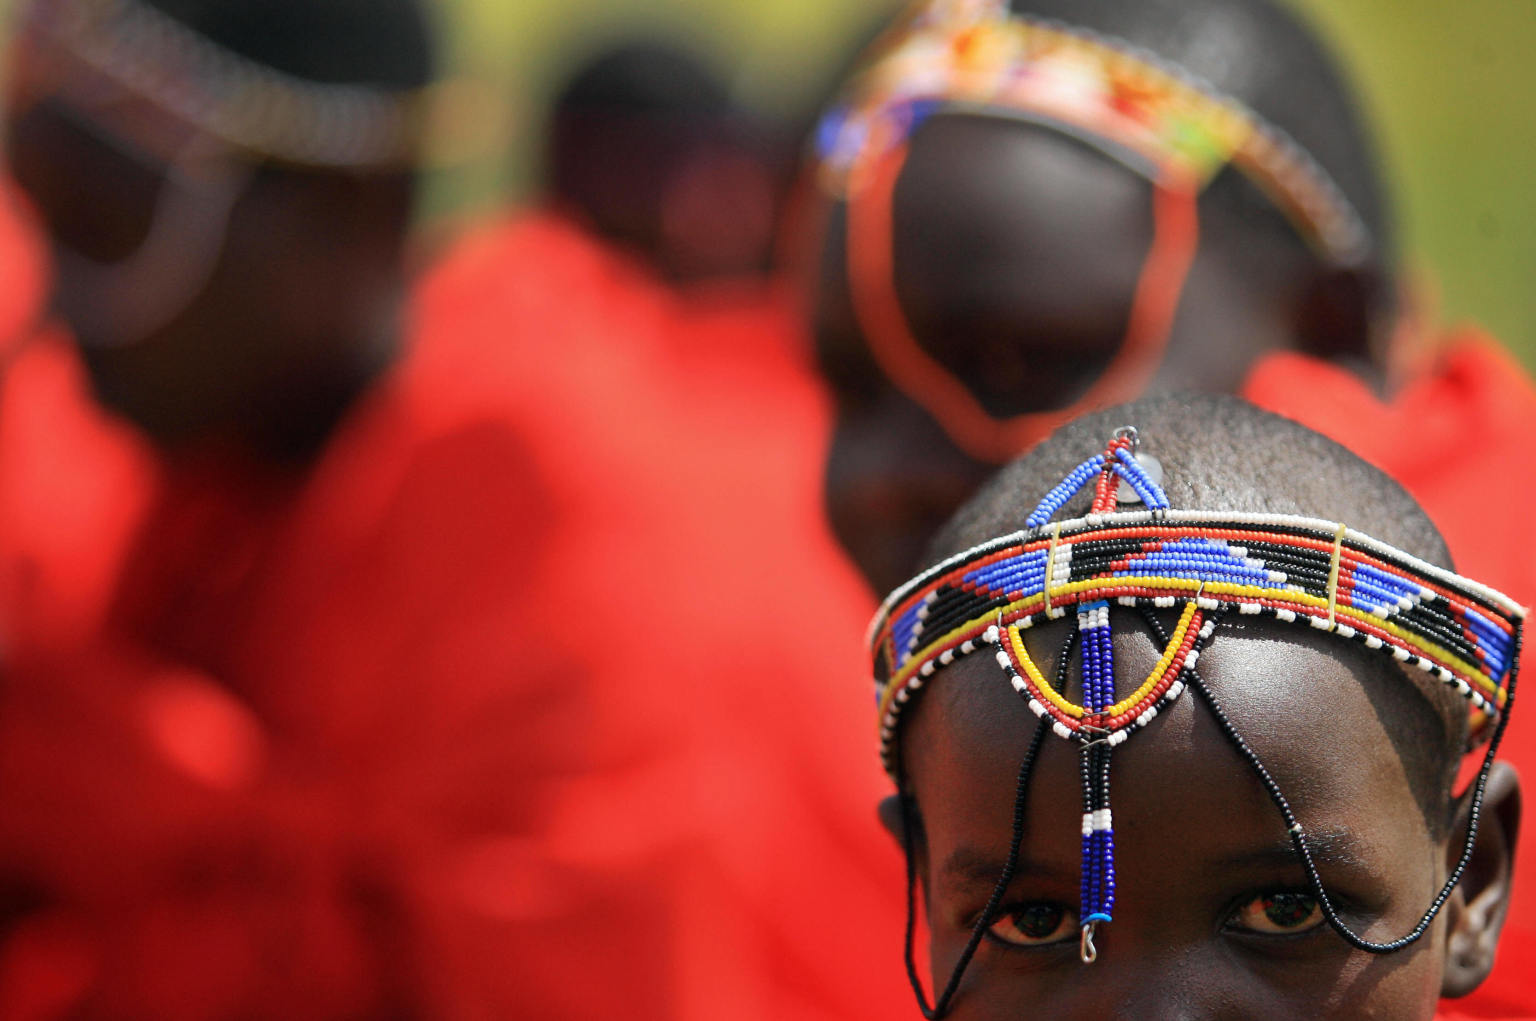 Ending 'Female Circumcision' in Practice and Name | HuffPost